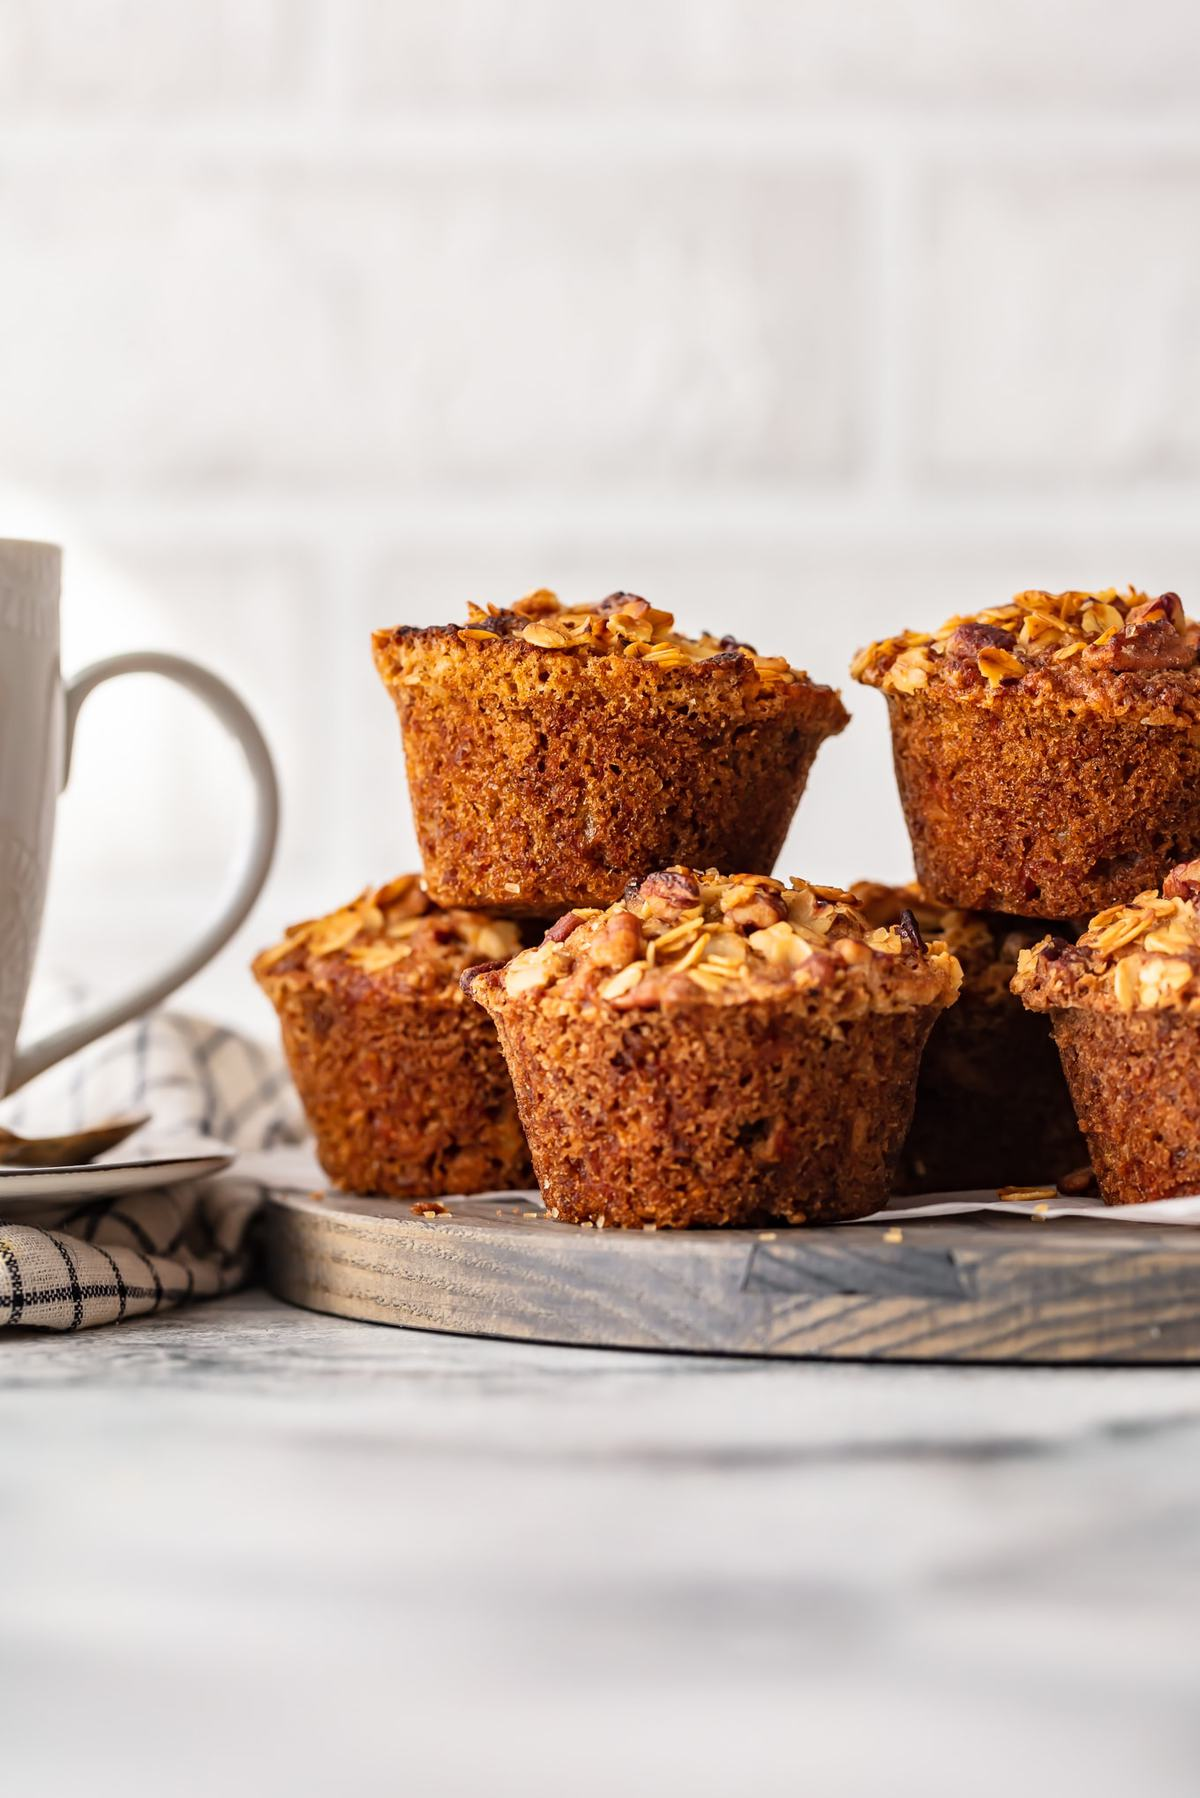 Morning Glory Muffins Recipe Breakfast Muffins Video